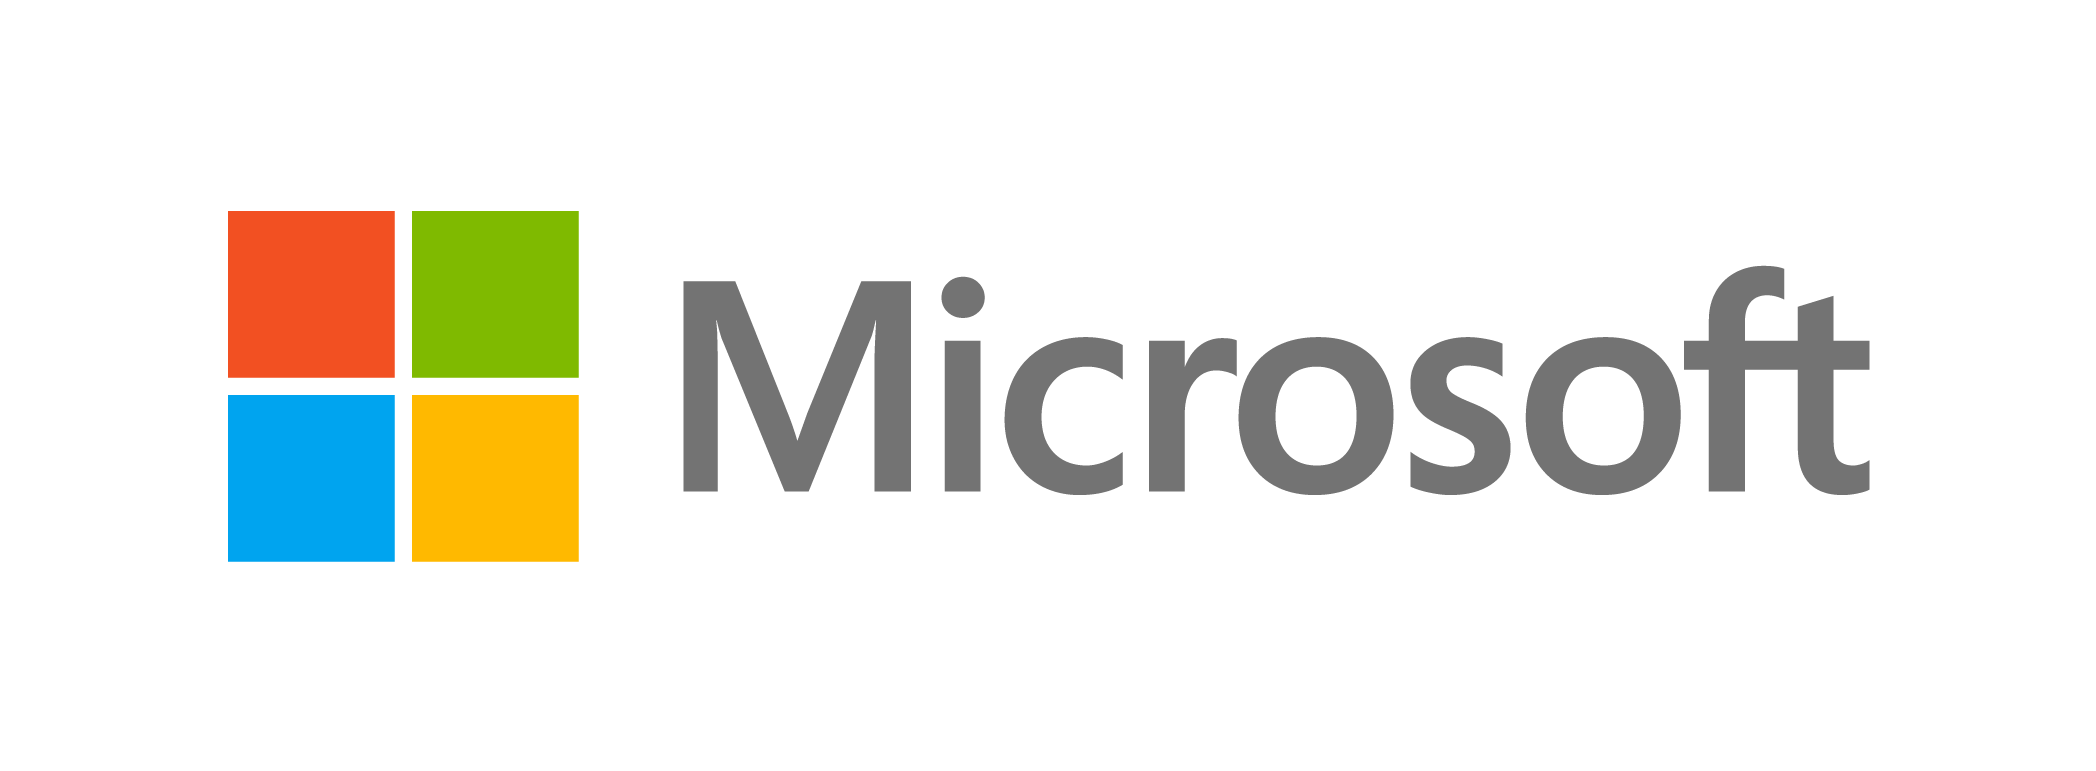 Microsoft Backgrounds Png Free Microsoft Backgrounds Png Transparent Images 60381 Pngio